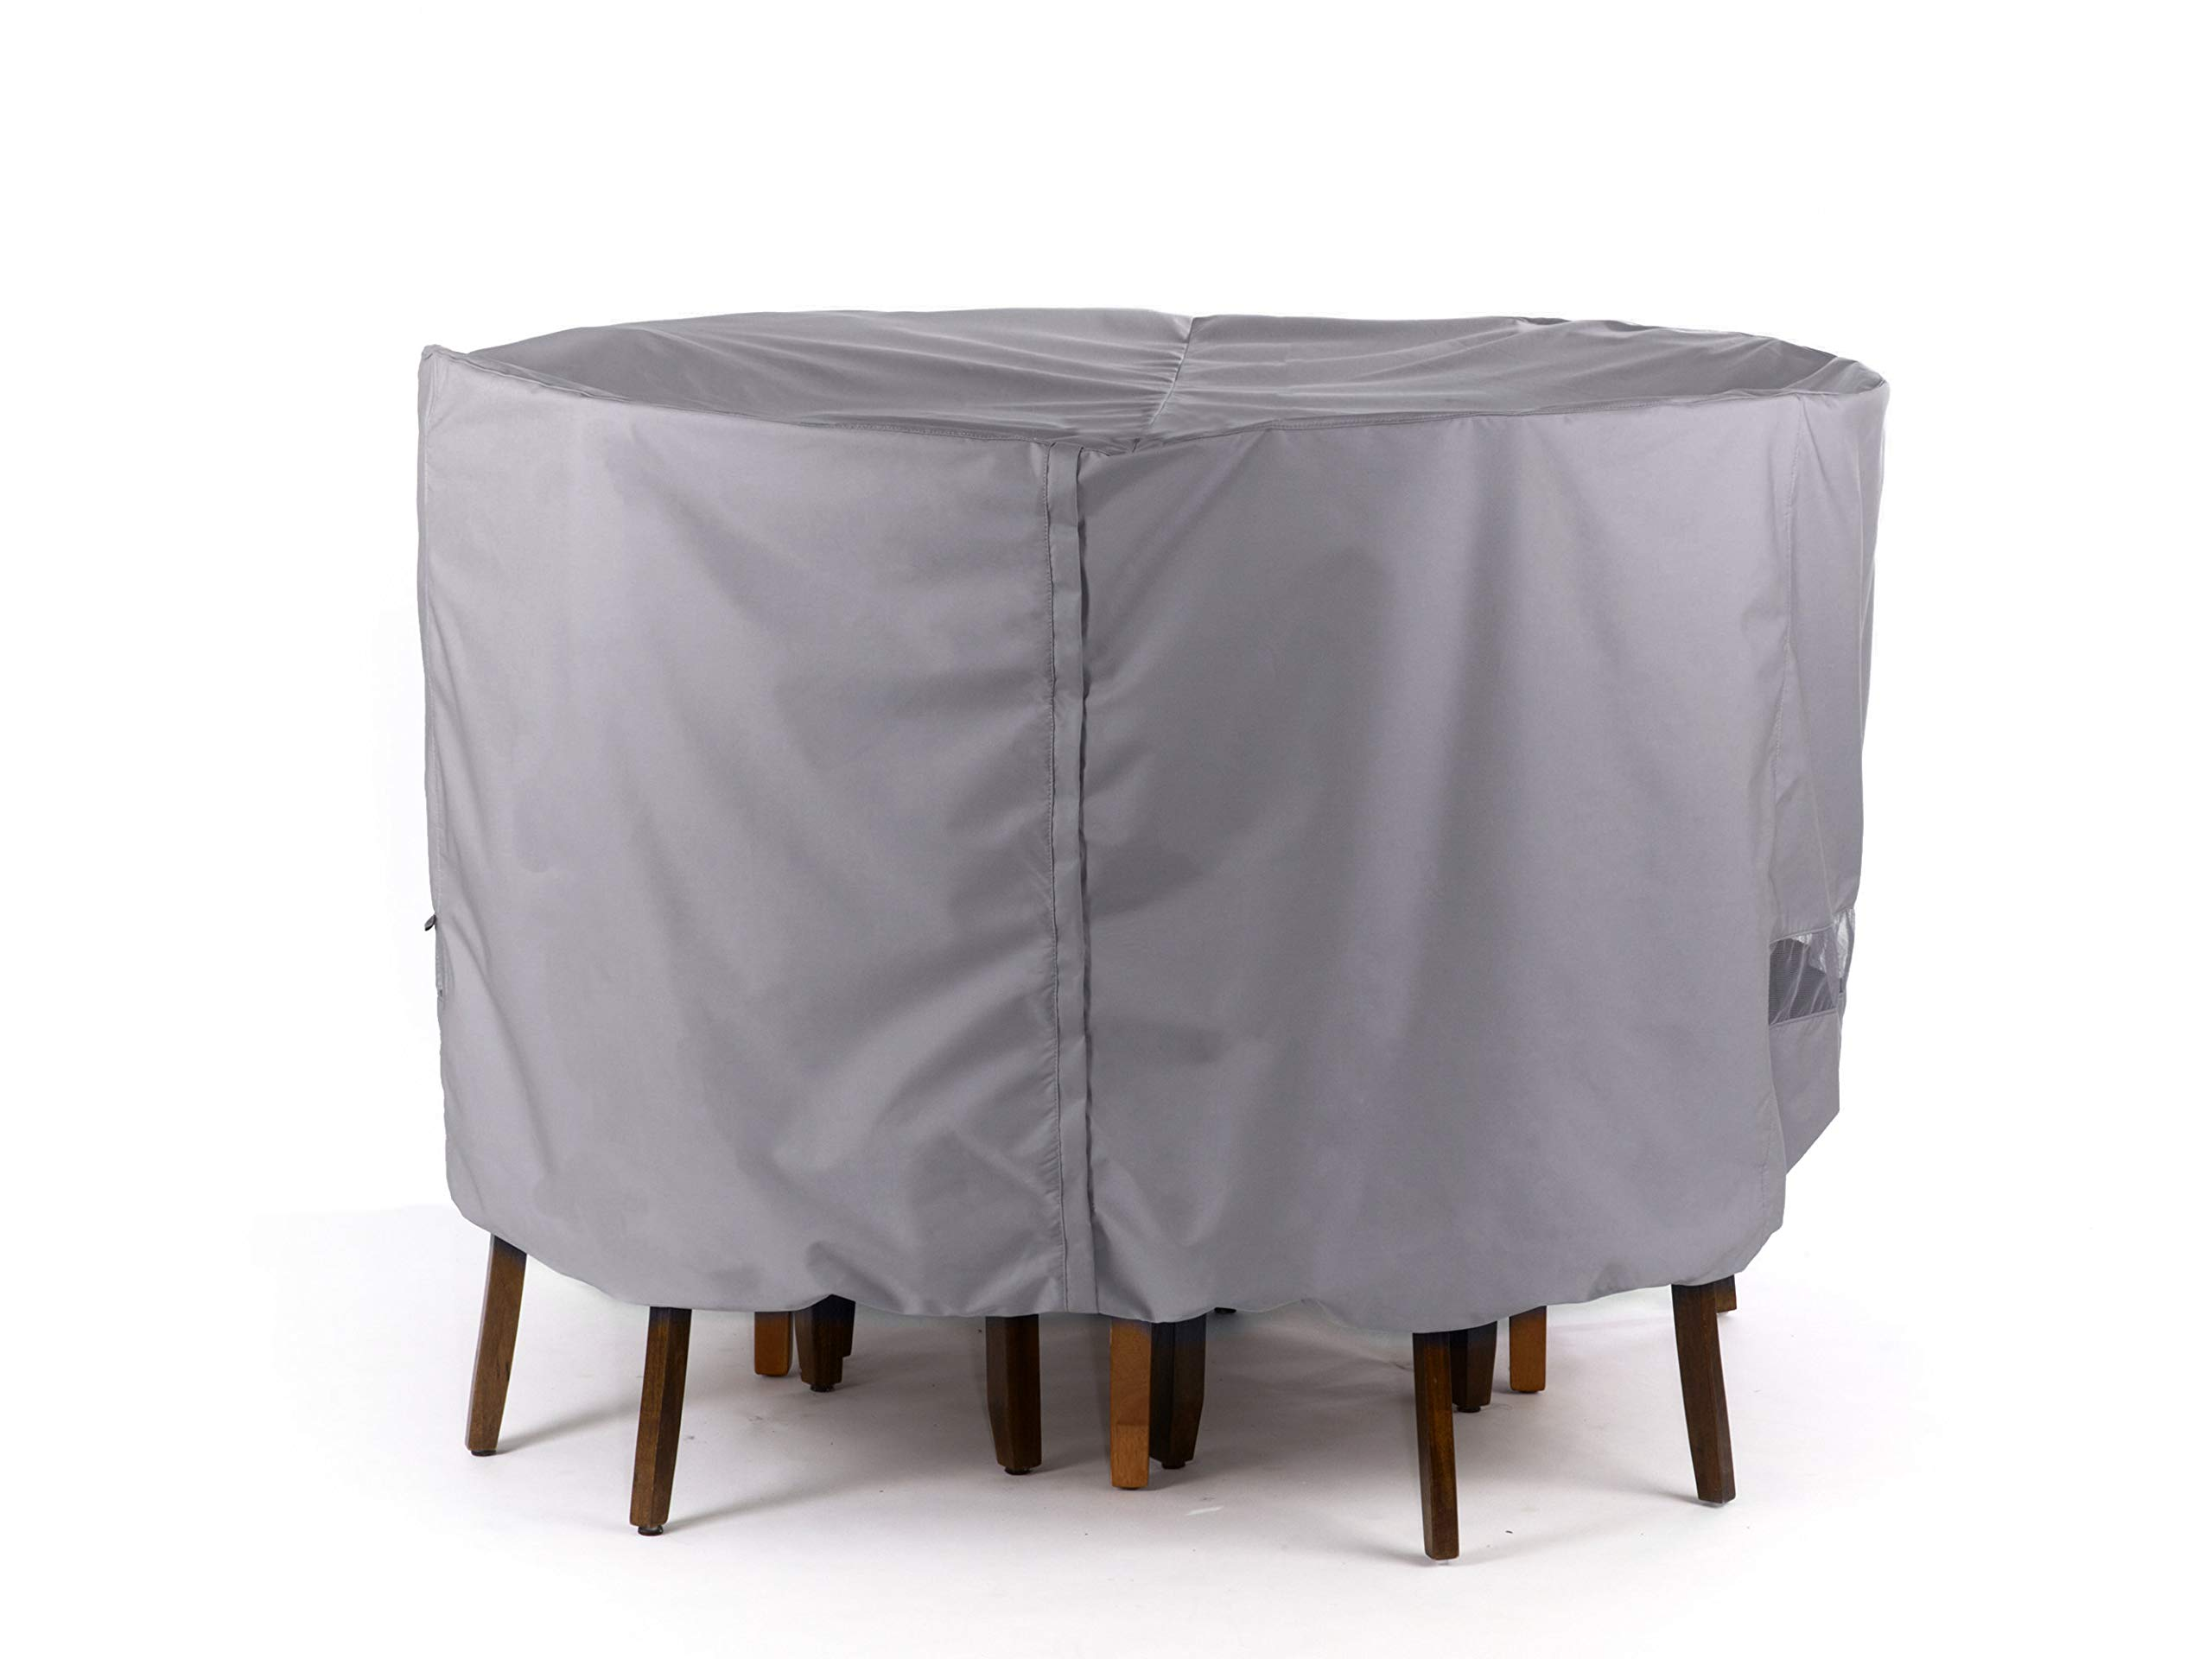 Covermates - Outdoor Patio Round Bar Table and Chair Set Cover 86DIAMETER x 40H - Elite Collection - 3 YR Warranty - Year Around Protection - Charcoal by Covermates